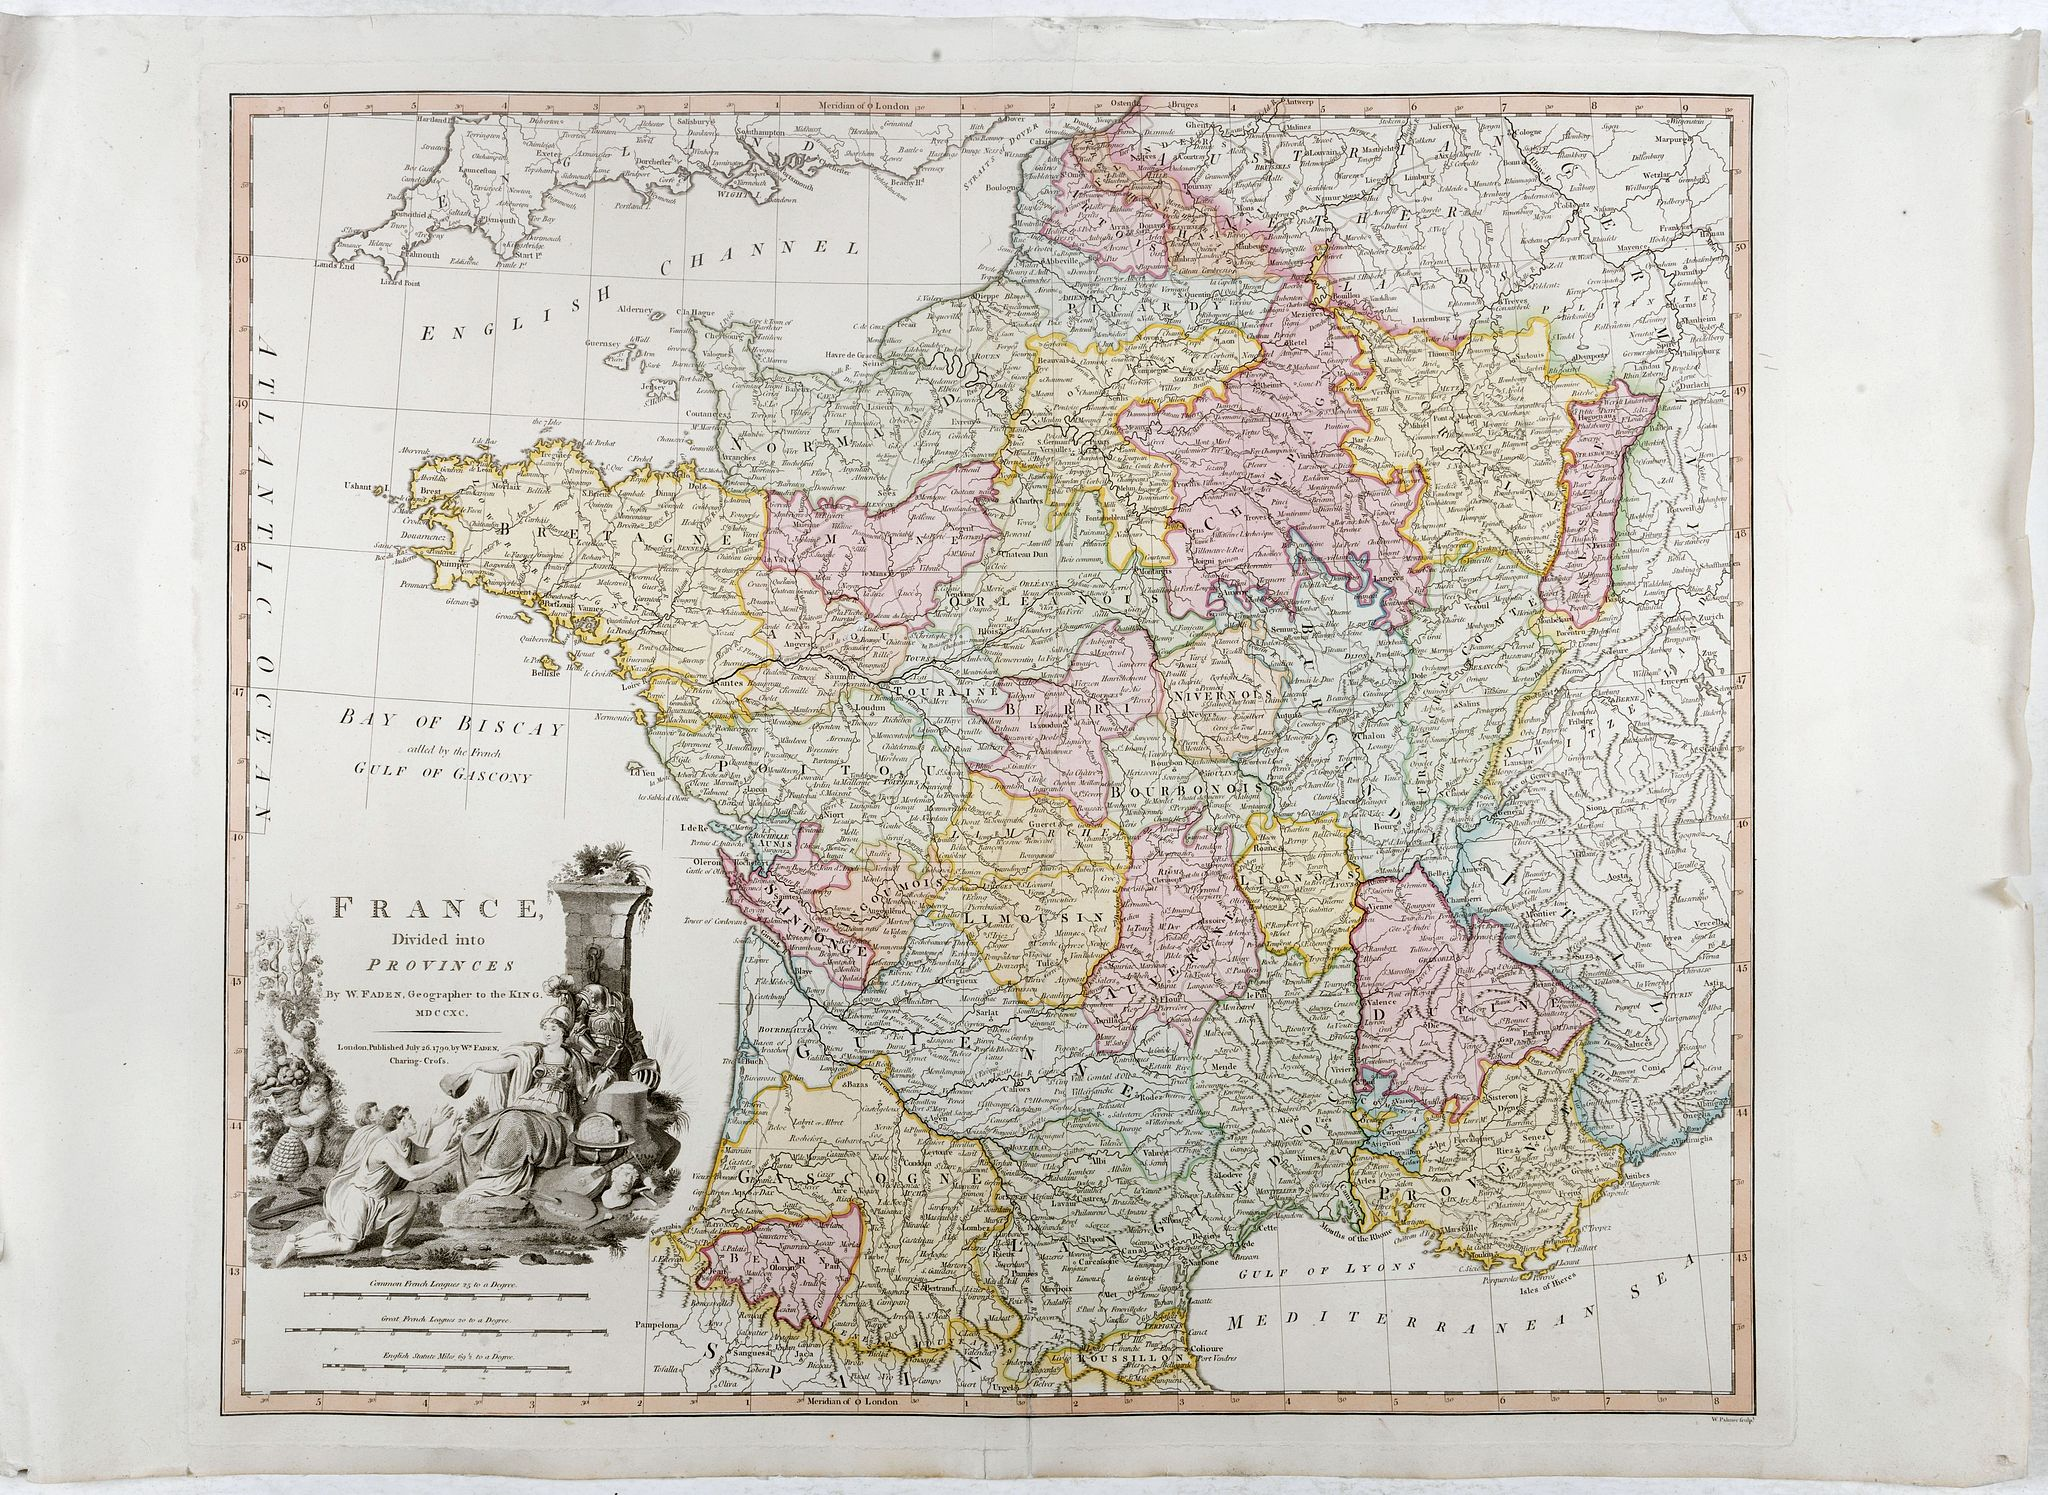 FADEN, W. -  France divided into Provinces.